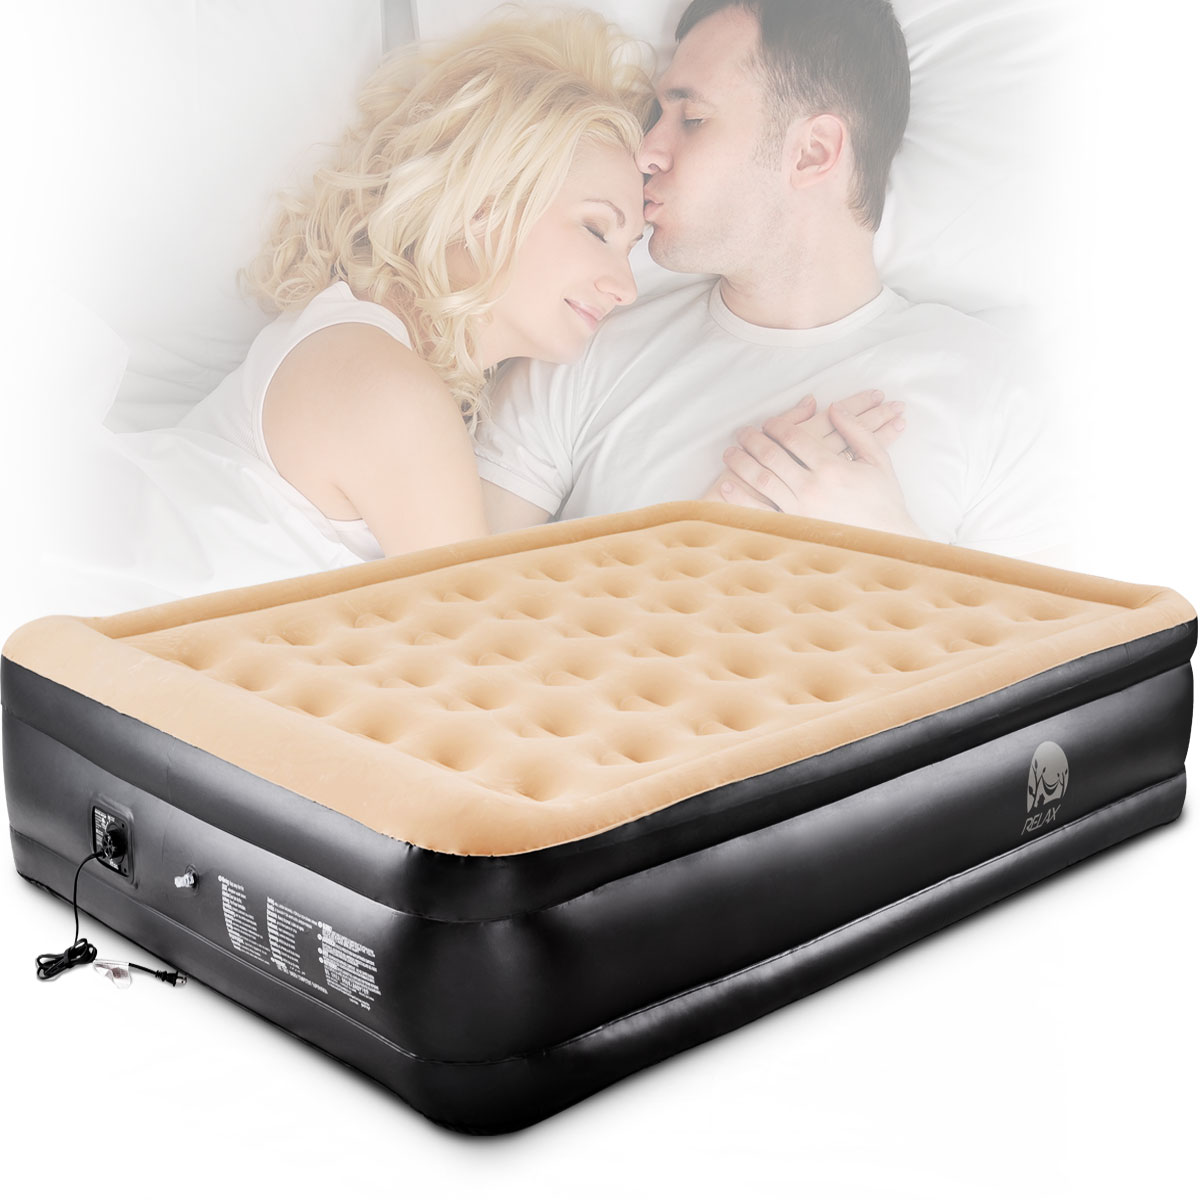 gymax double inflatable raised mattress air bed built in electric